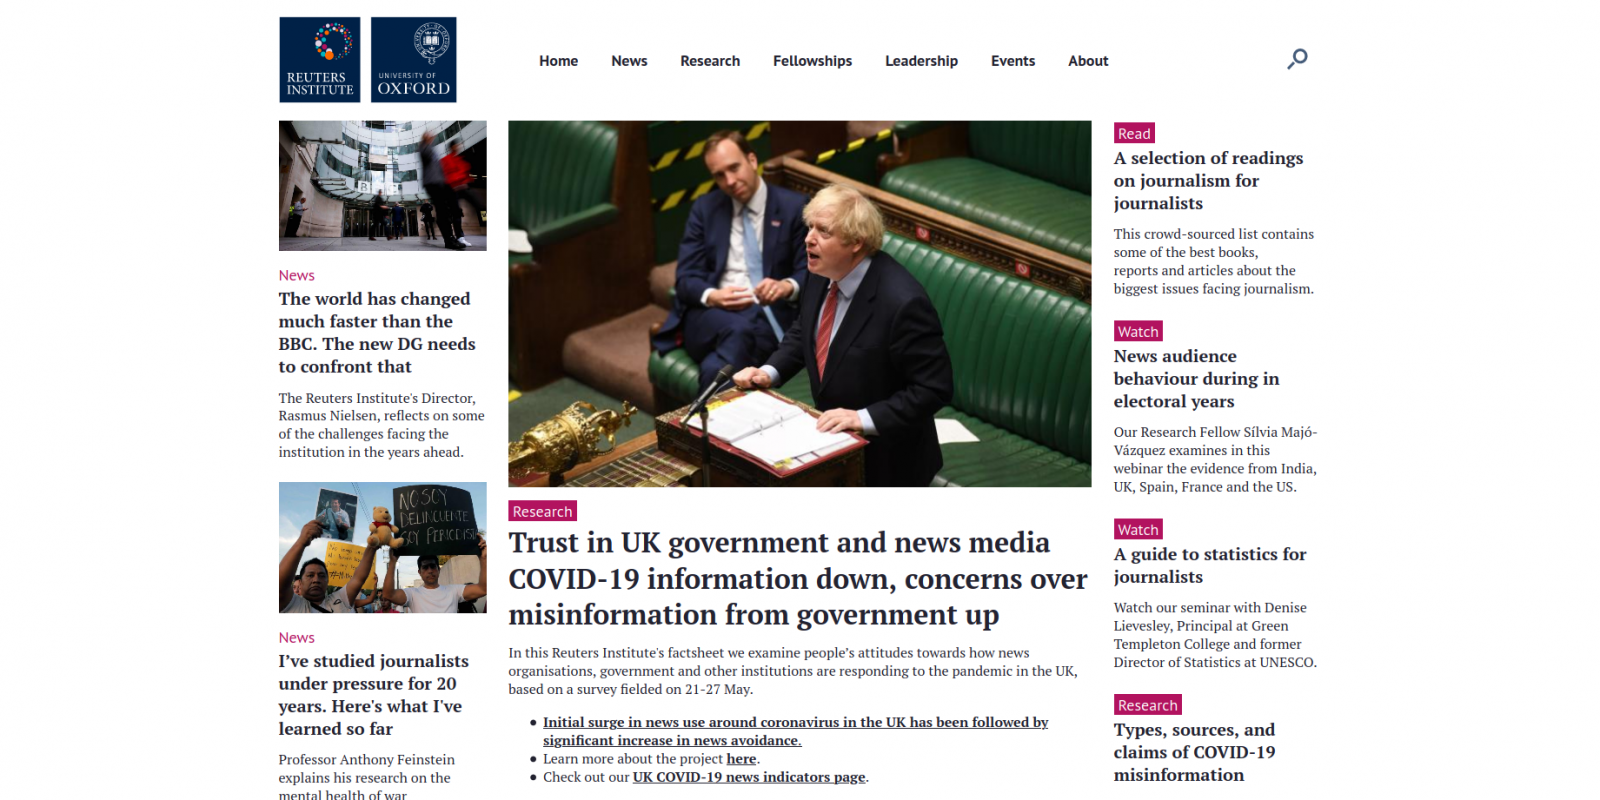 Reuters Institute, University of Oxford - website homepage